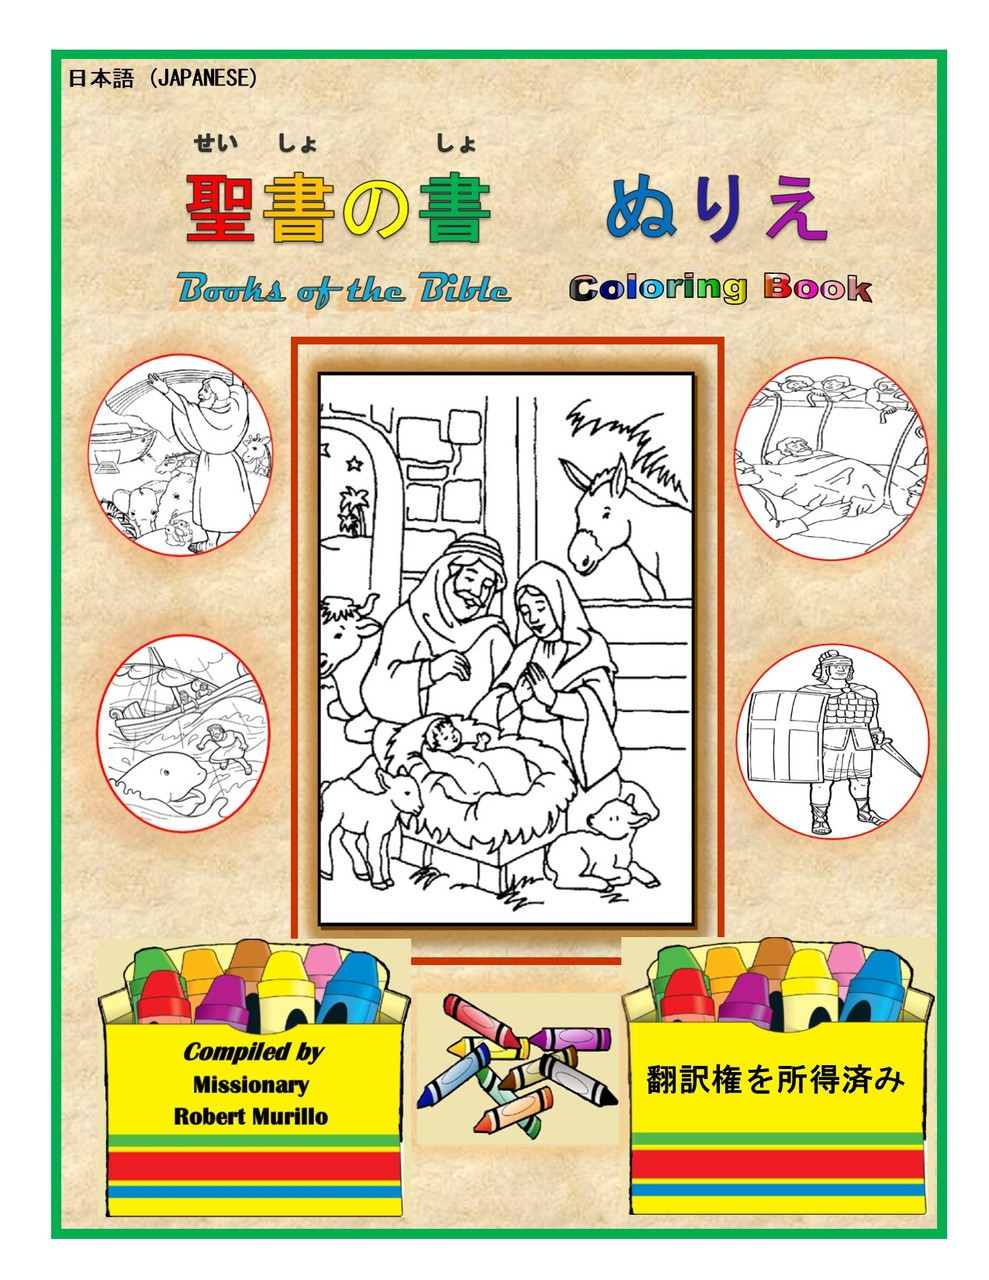 Books of the Bible Coloring Book Japanese 66 Pages